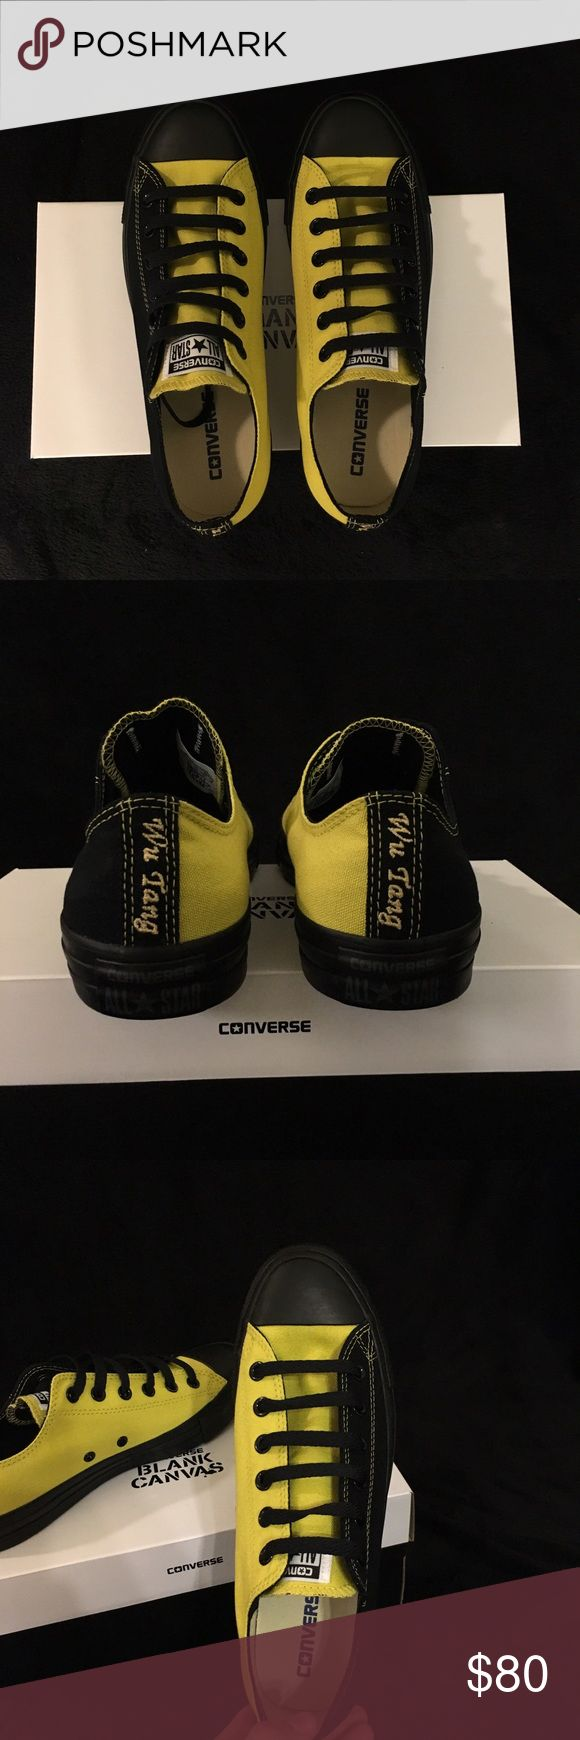 Custom Wu-Tang Converse These low top converse are custom designed, one-of-a-kind Wu Tang Clan Converse. Go against the trend or start your own.  Converse Shoes Sneakers